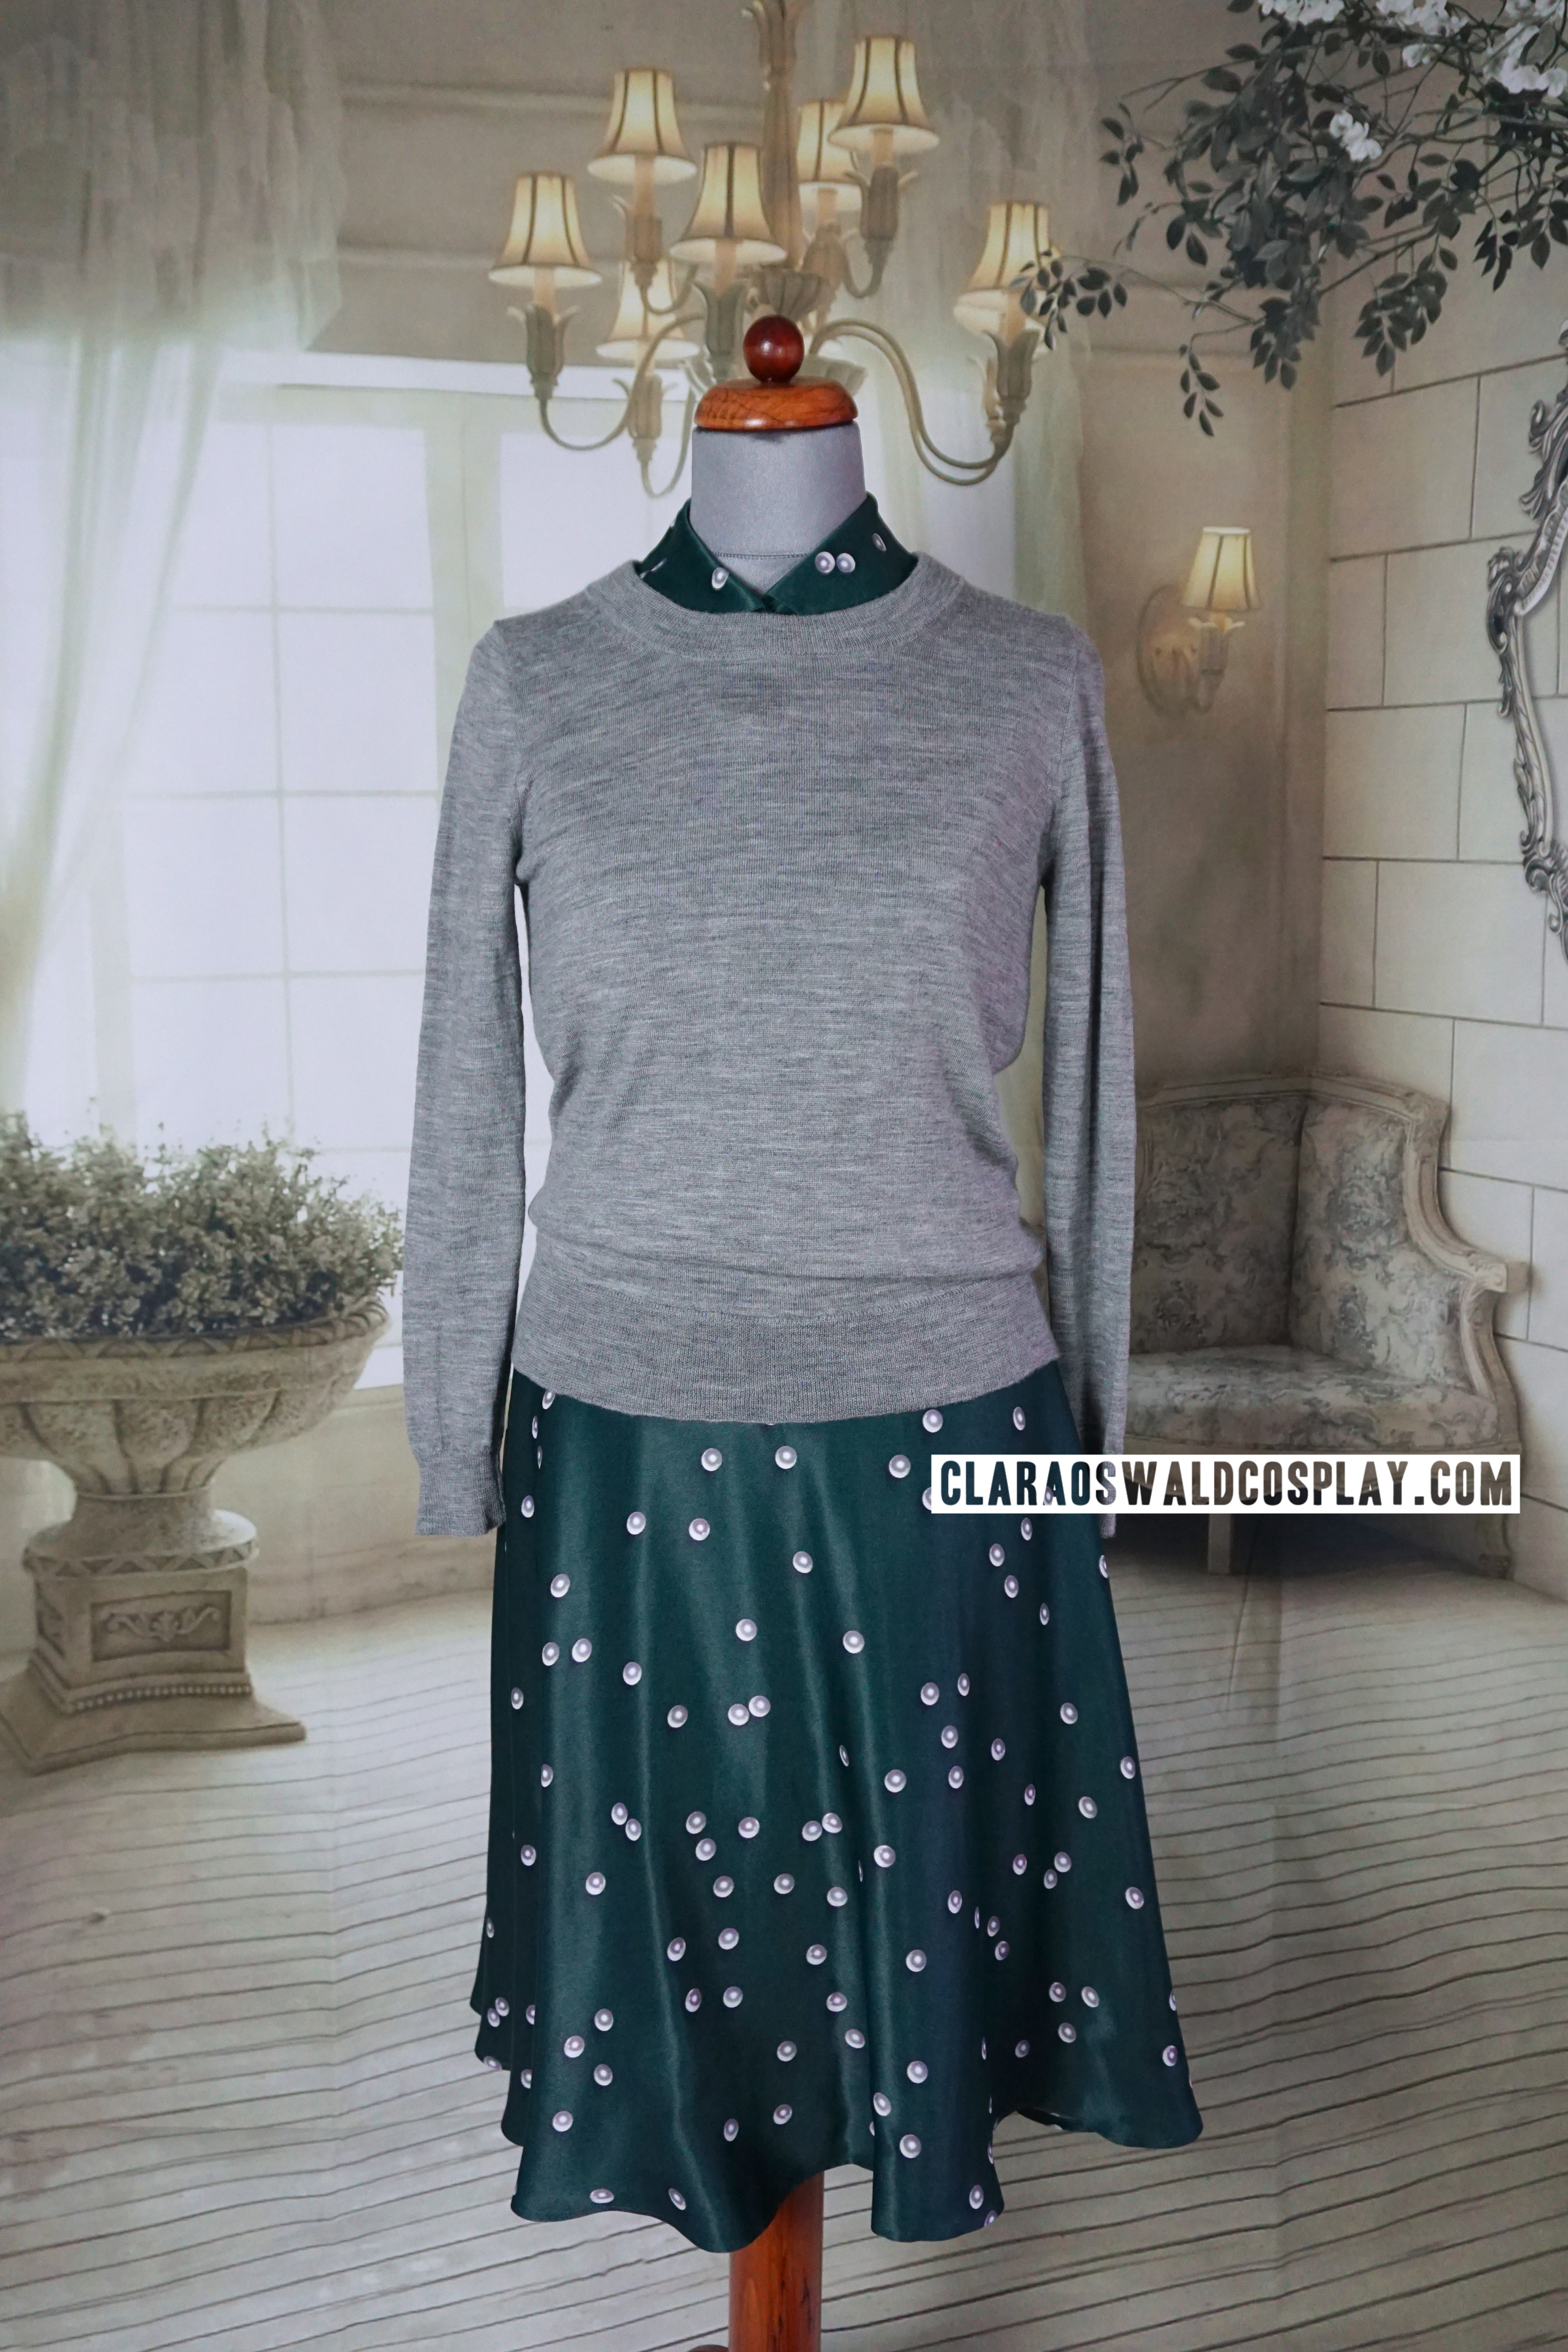 Clara Oswald's Magician's Apprentice / Witch's Familiar outfit featuring the &Other Stories Pearl Print Dress and J.Crew Merino Jumper in Heather Smoke